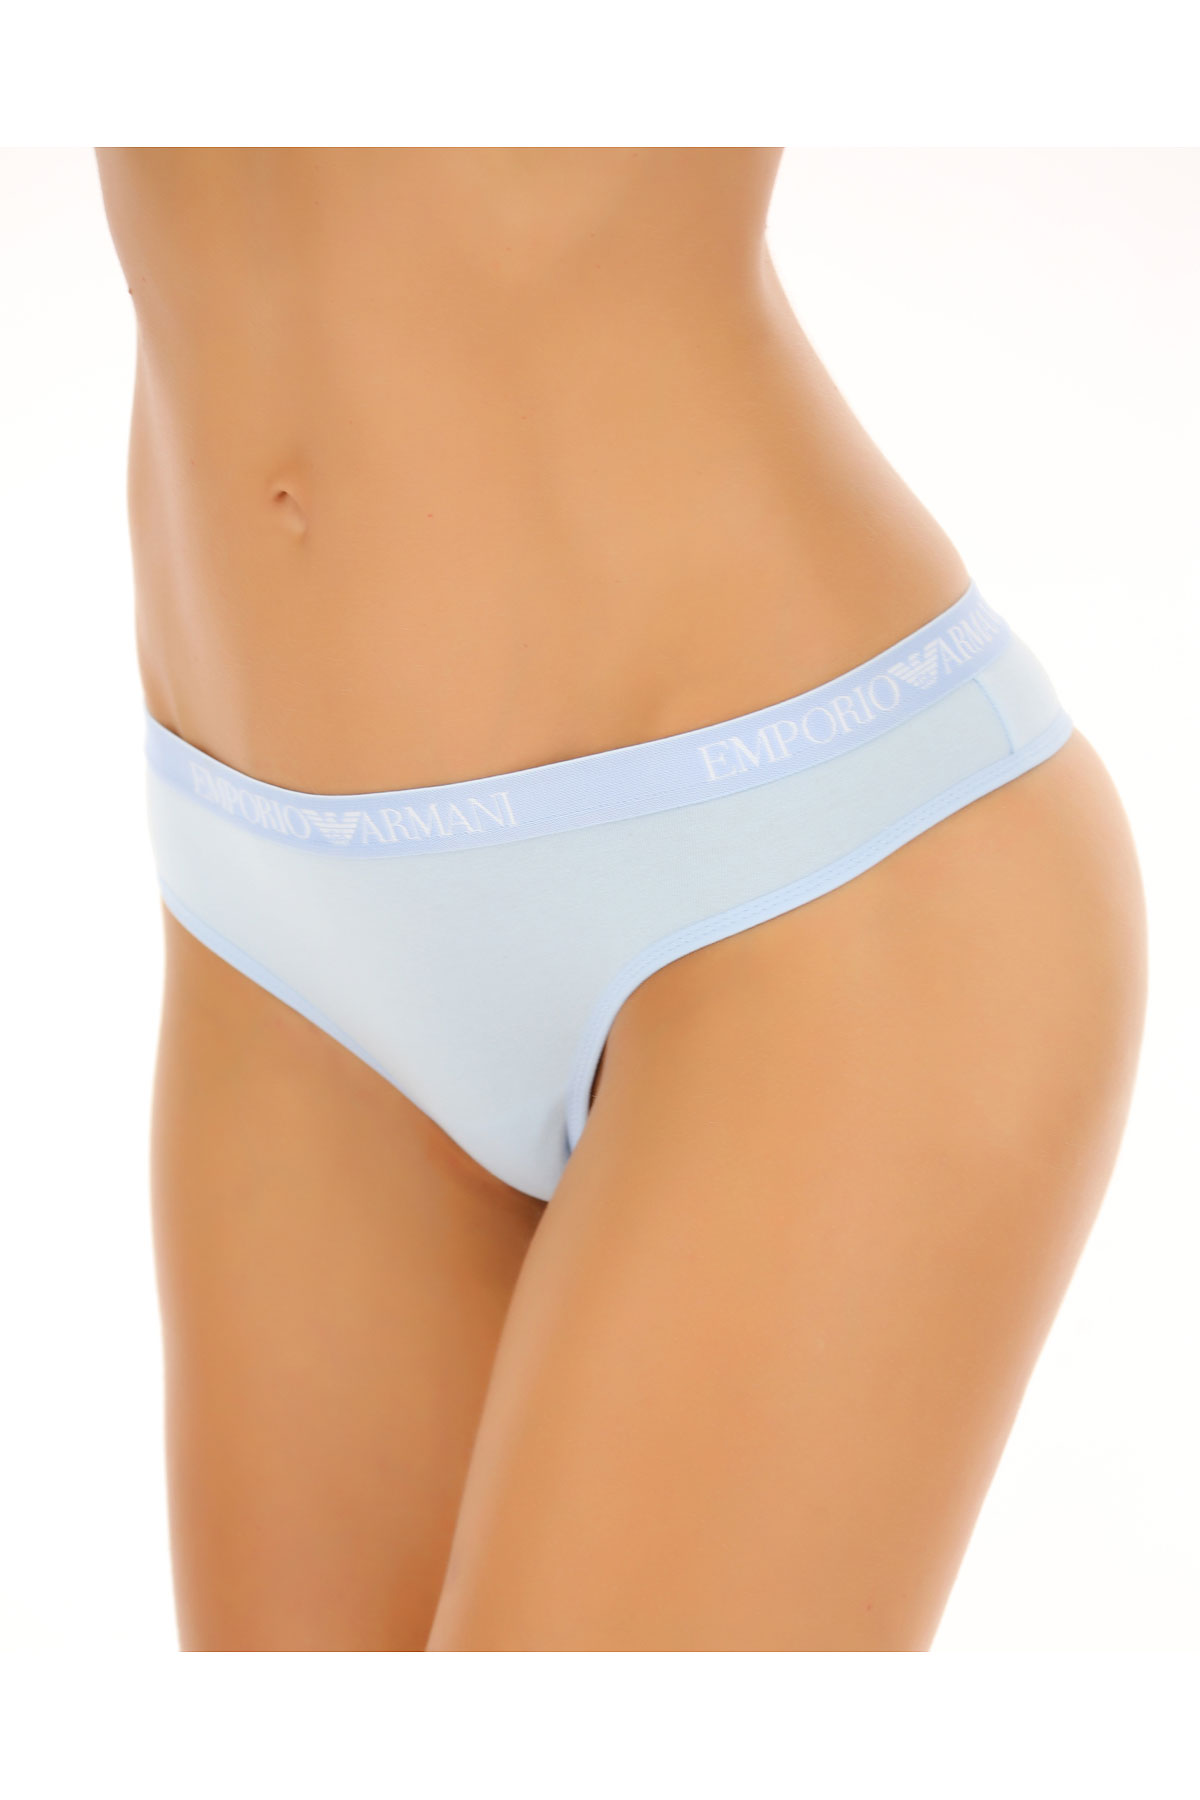 Image of Emporio Armani Womens Underwear On Sale in Outlet, Azure, Cotton, 2017, 2/S 3/M